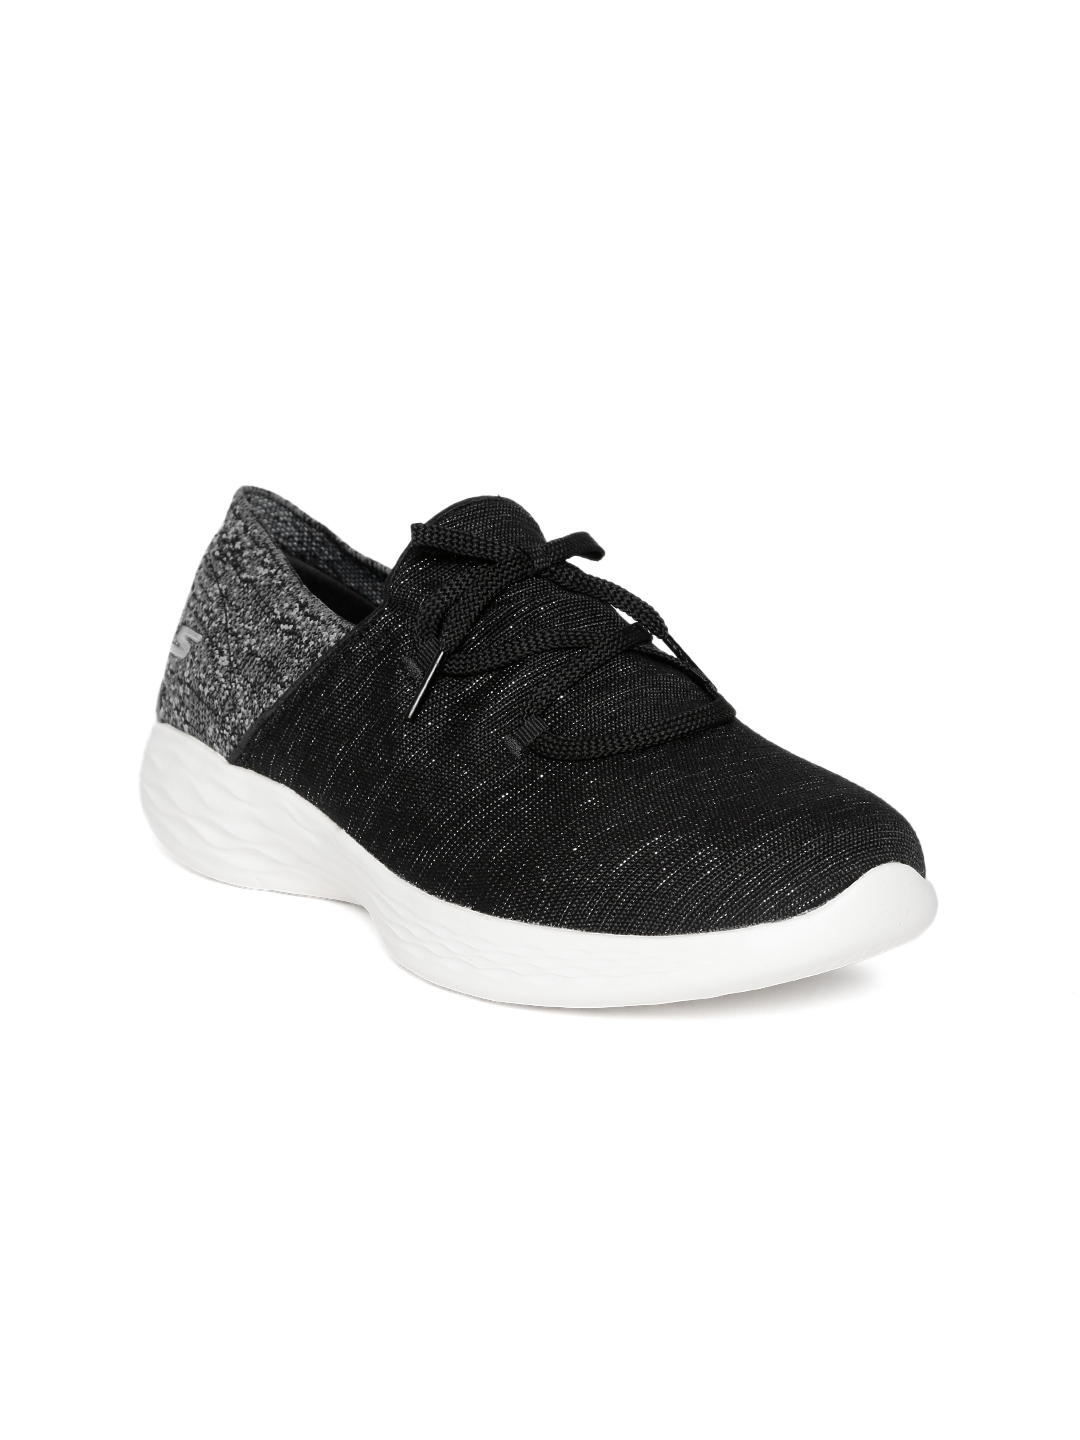 harto Pobreza extrema Eclipse solar  Buy Skechers Women Black You Revere Sneakers - Casual Shoes for Women  8886133 | Myntra